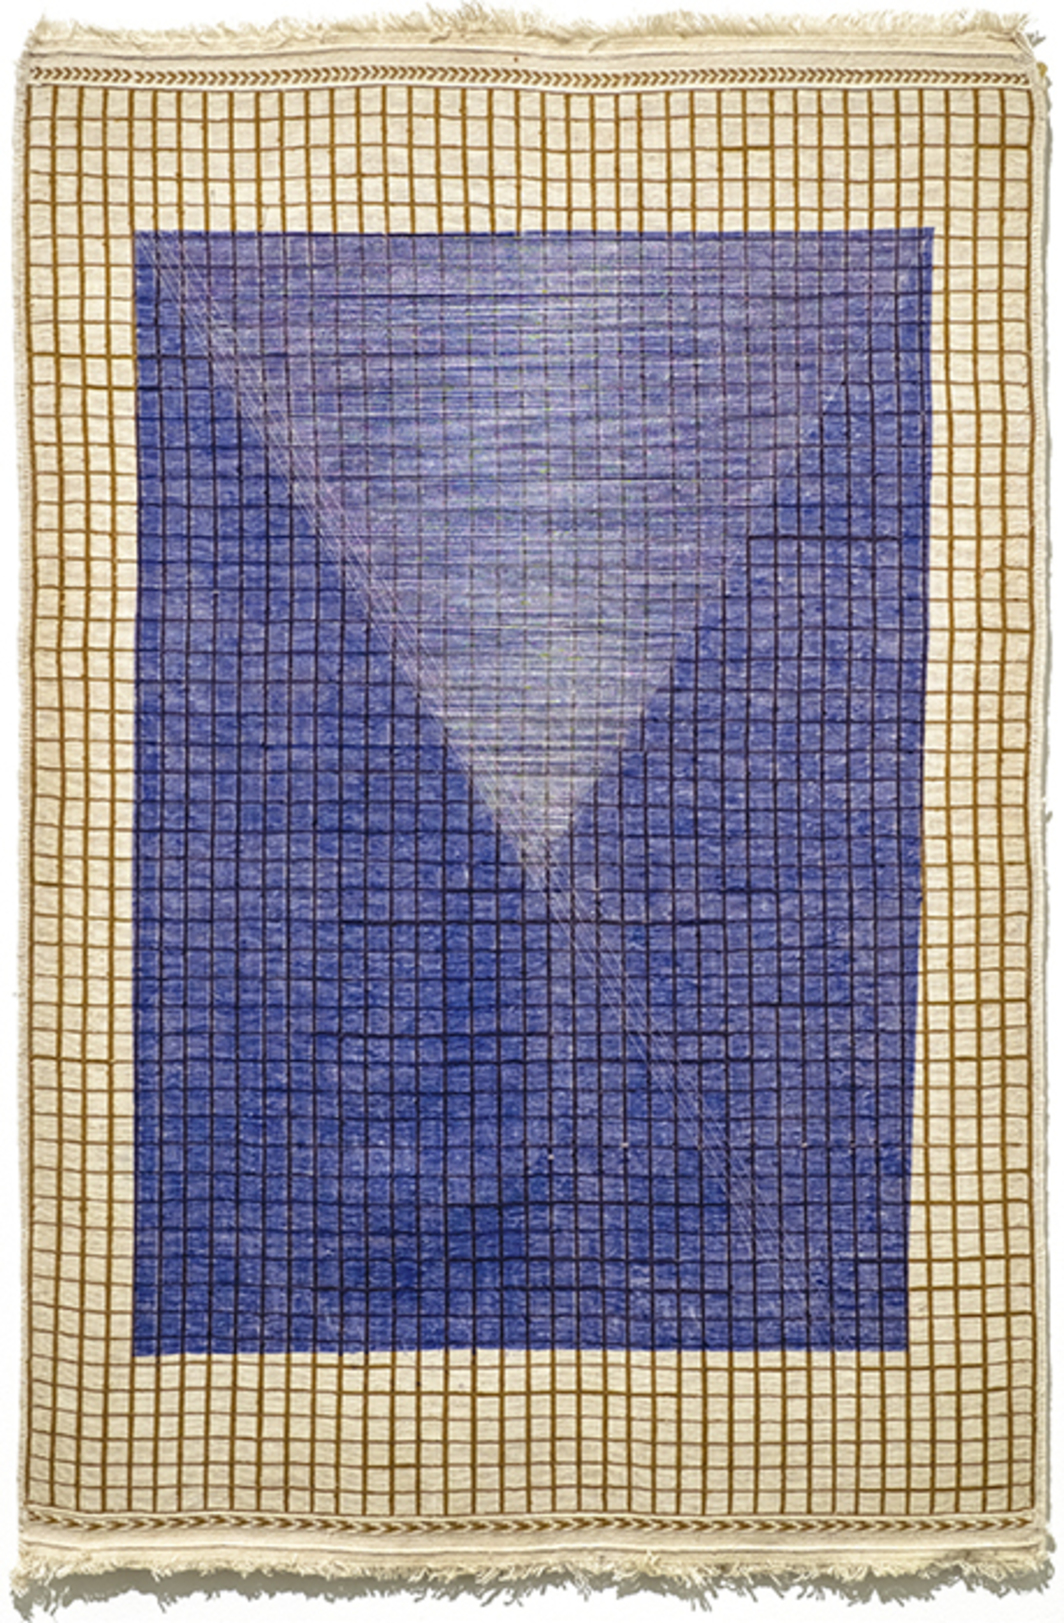 "Haleh Redjaian, Untitled, 2015, lithograph and thread on handwoven carpet, 43 3/4 × 27 1/2""."